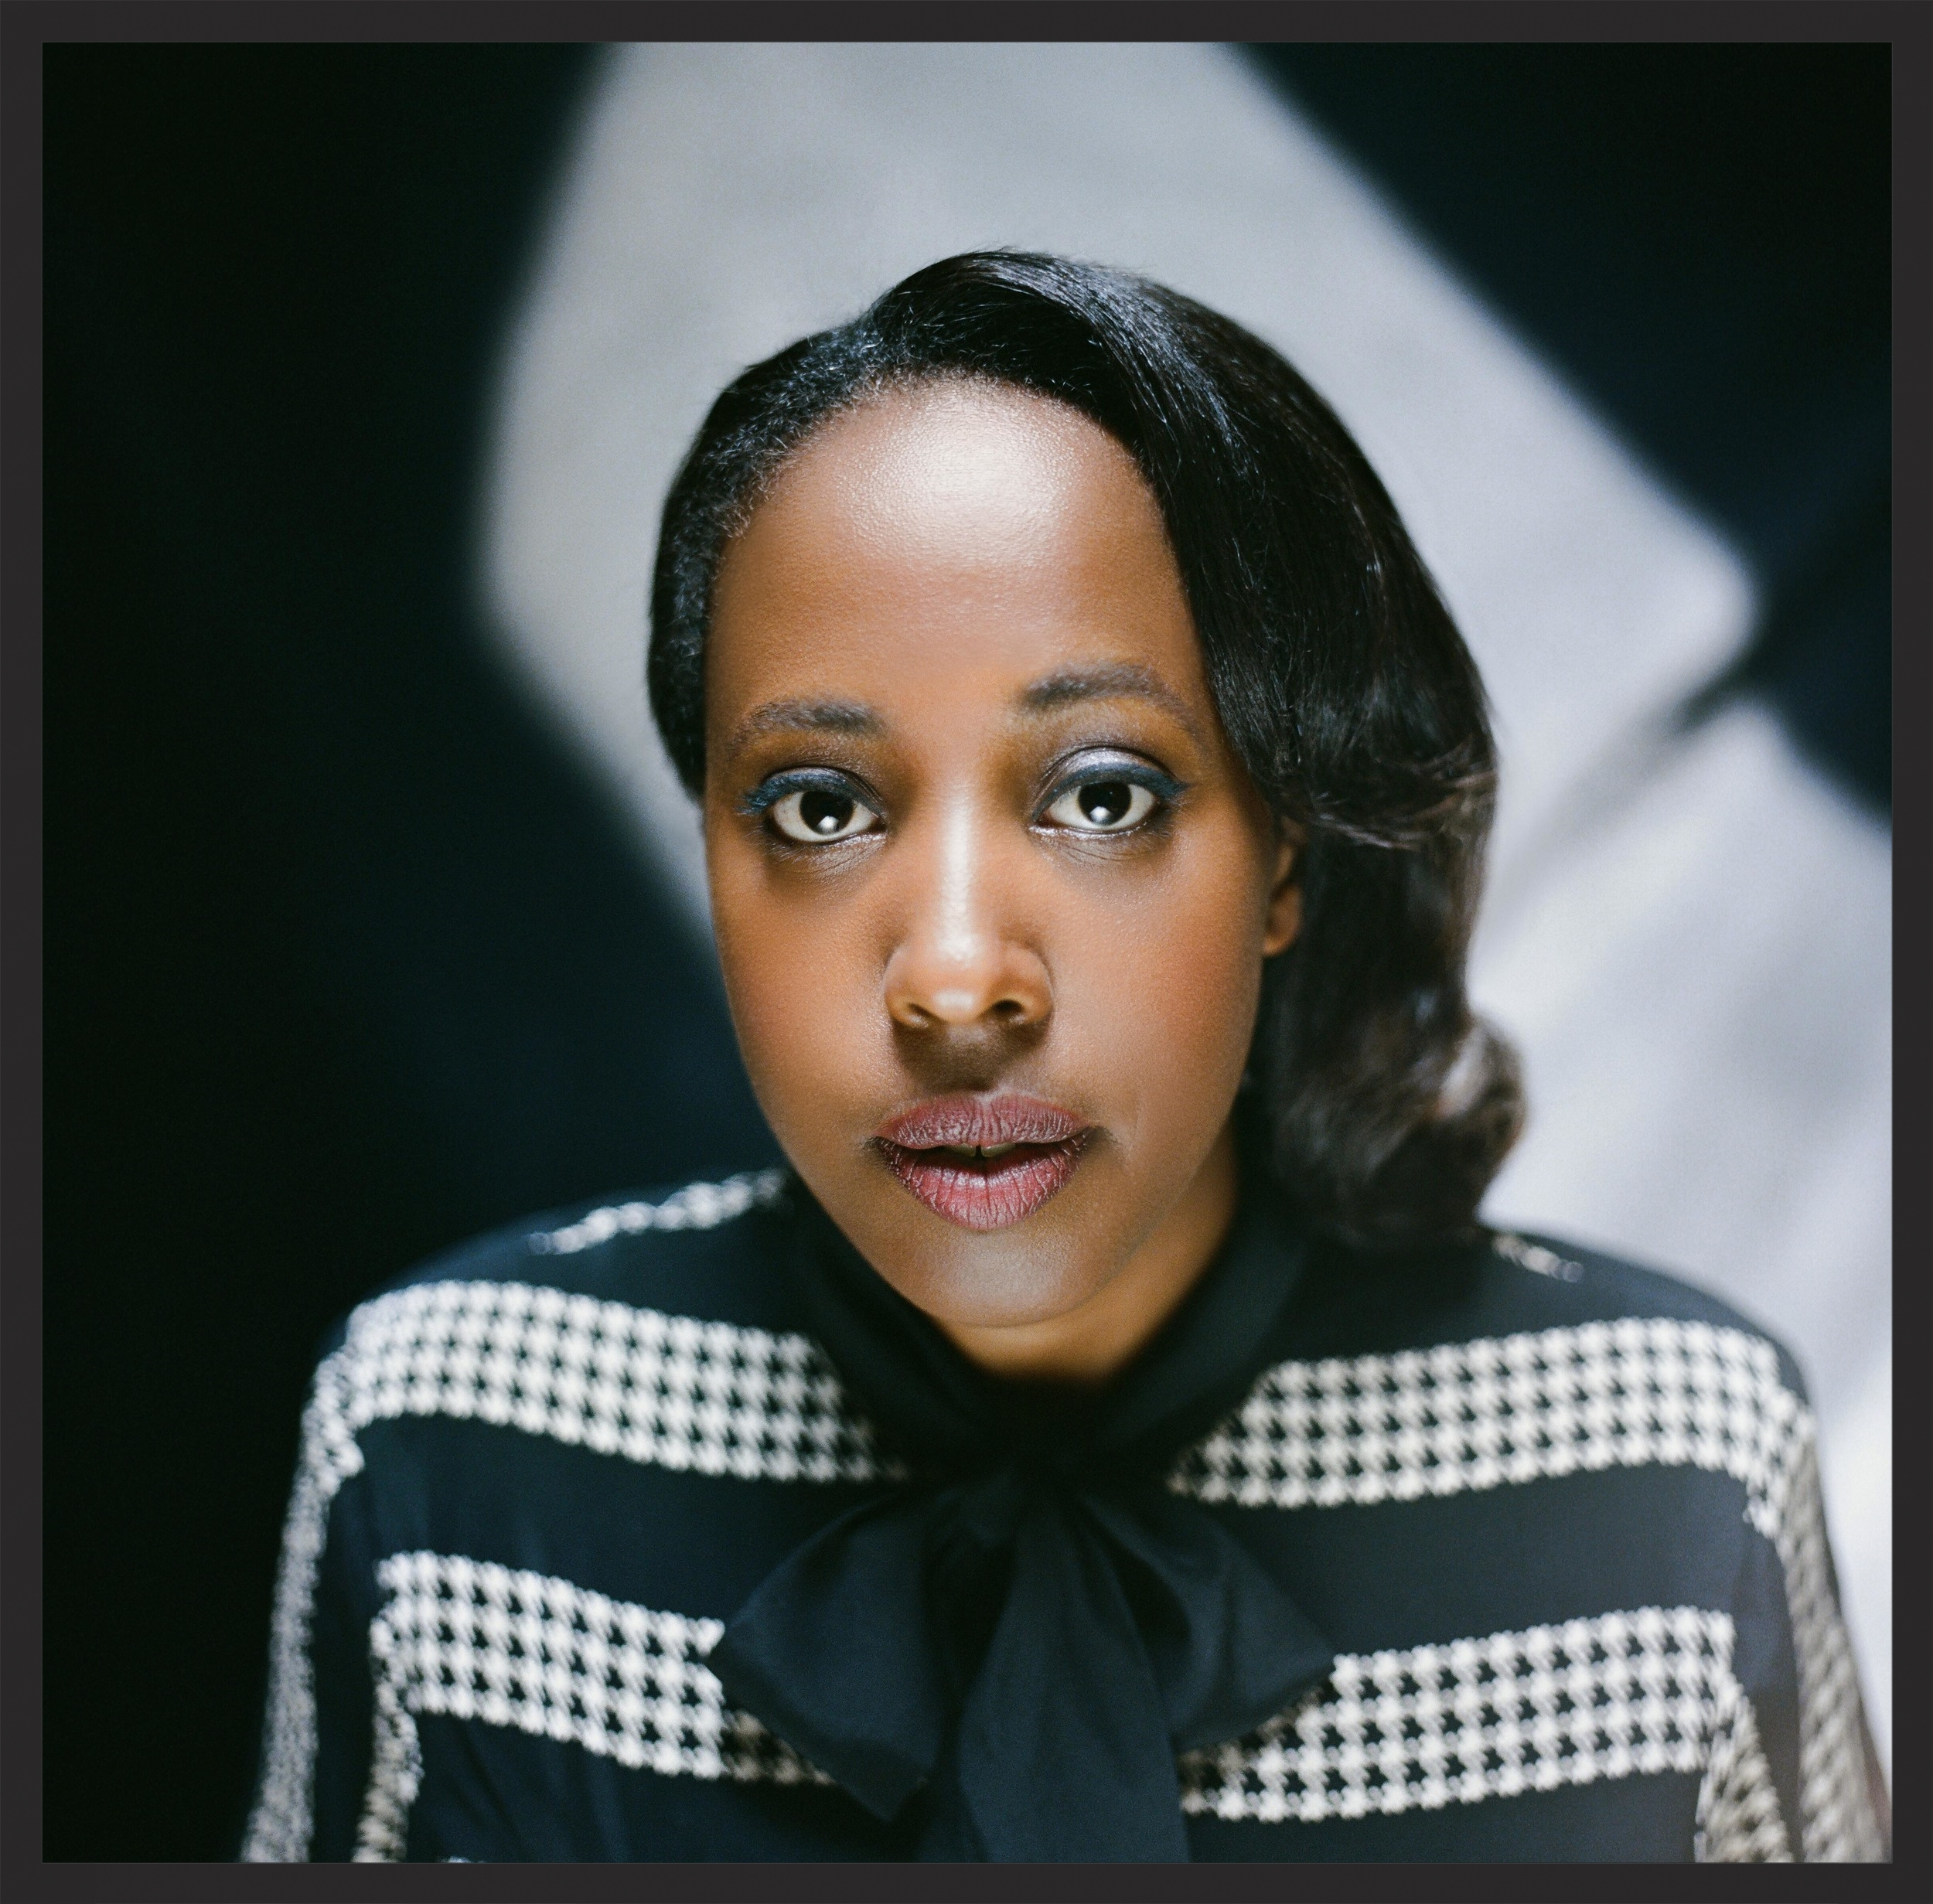 Canadian soul singer  Cold Specks  (Ladan Hussein) provided additonal backing vocals on Dead Editors.